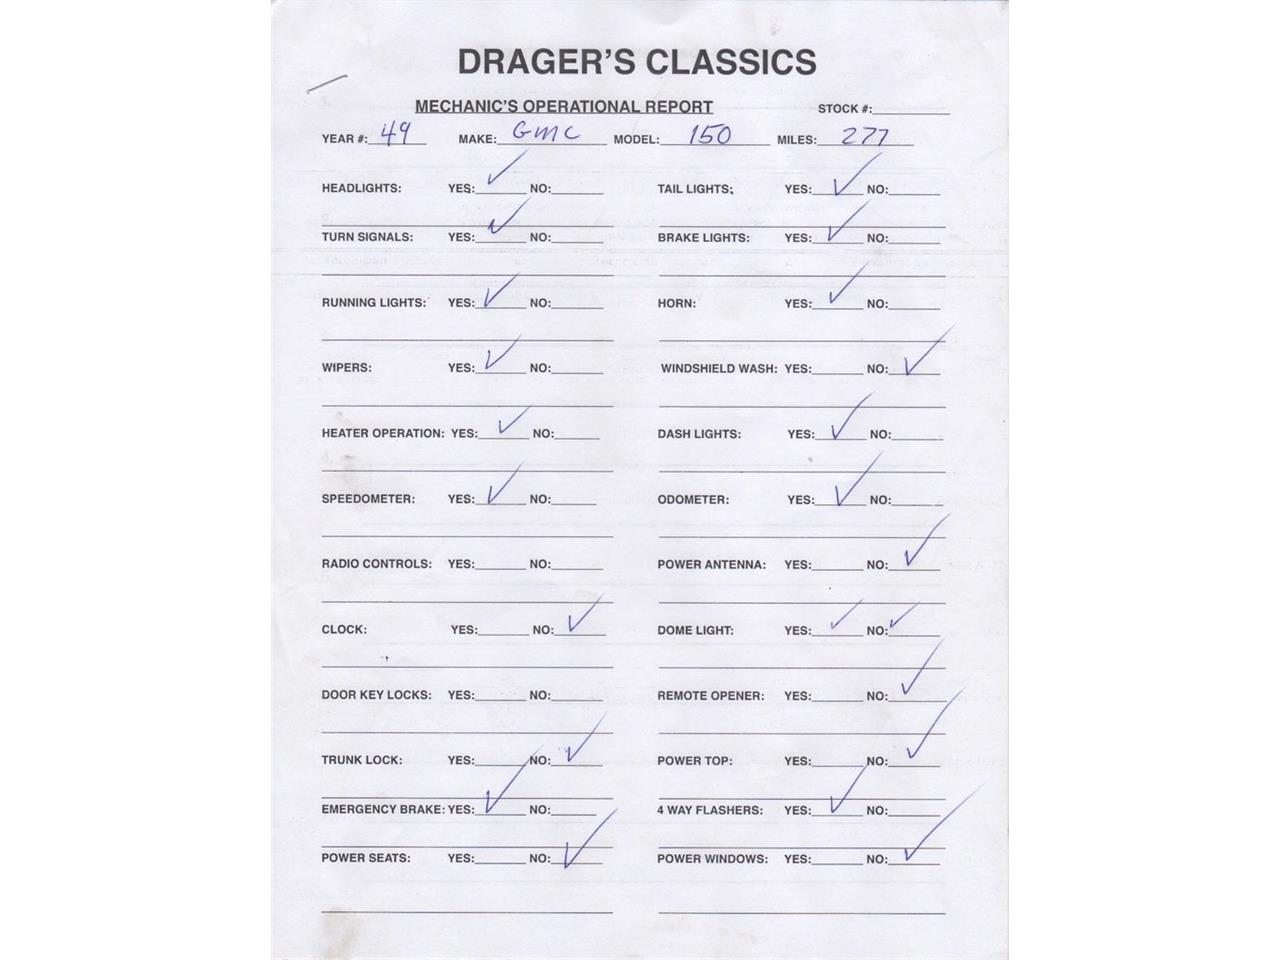 Large Picture of Classic 1949 GMC 150 5 Window 1/2 Ton PickUp - $34,500.00 Offered by Drager's Classics - LDIL